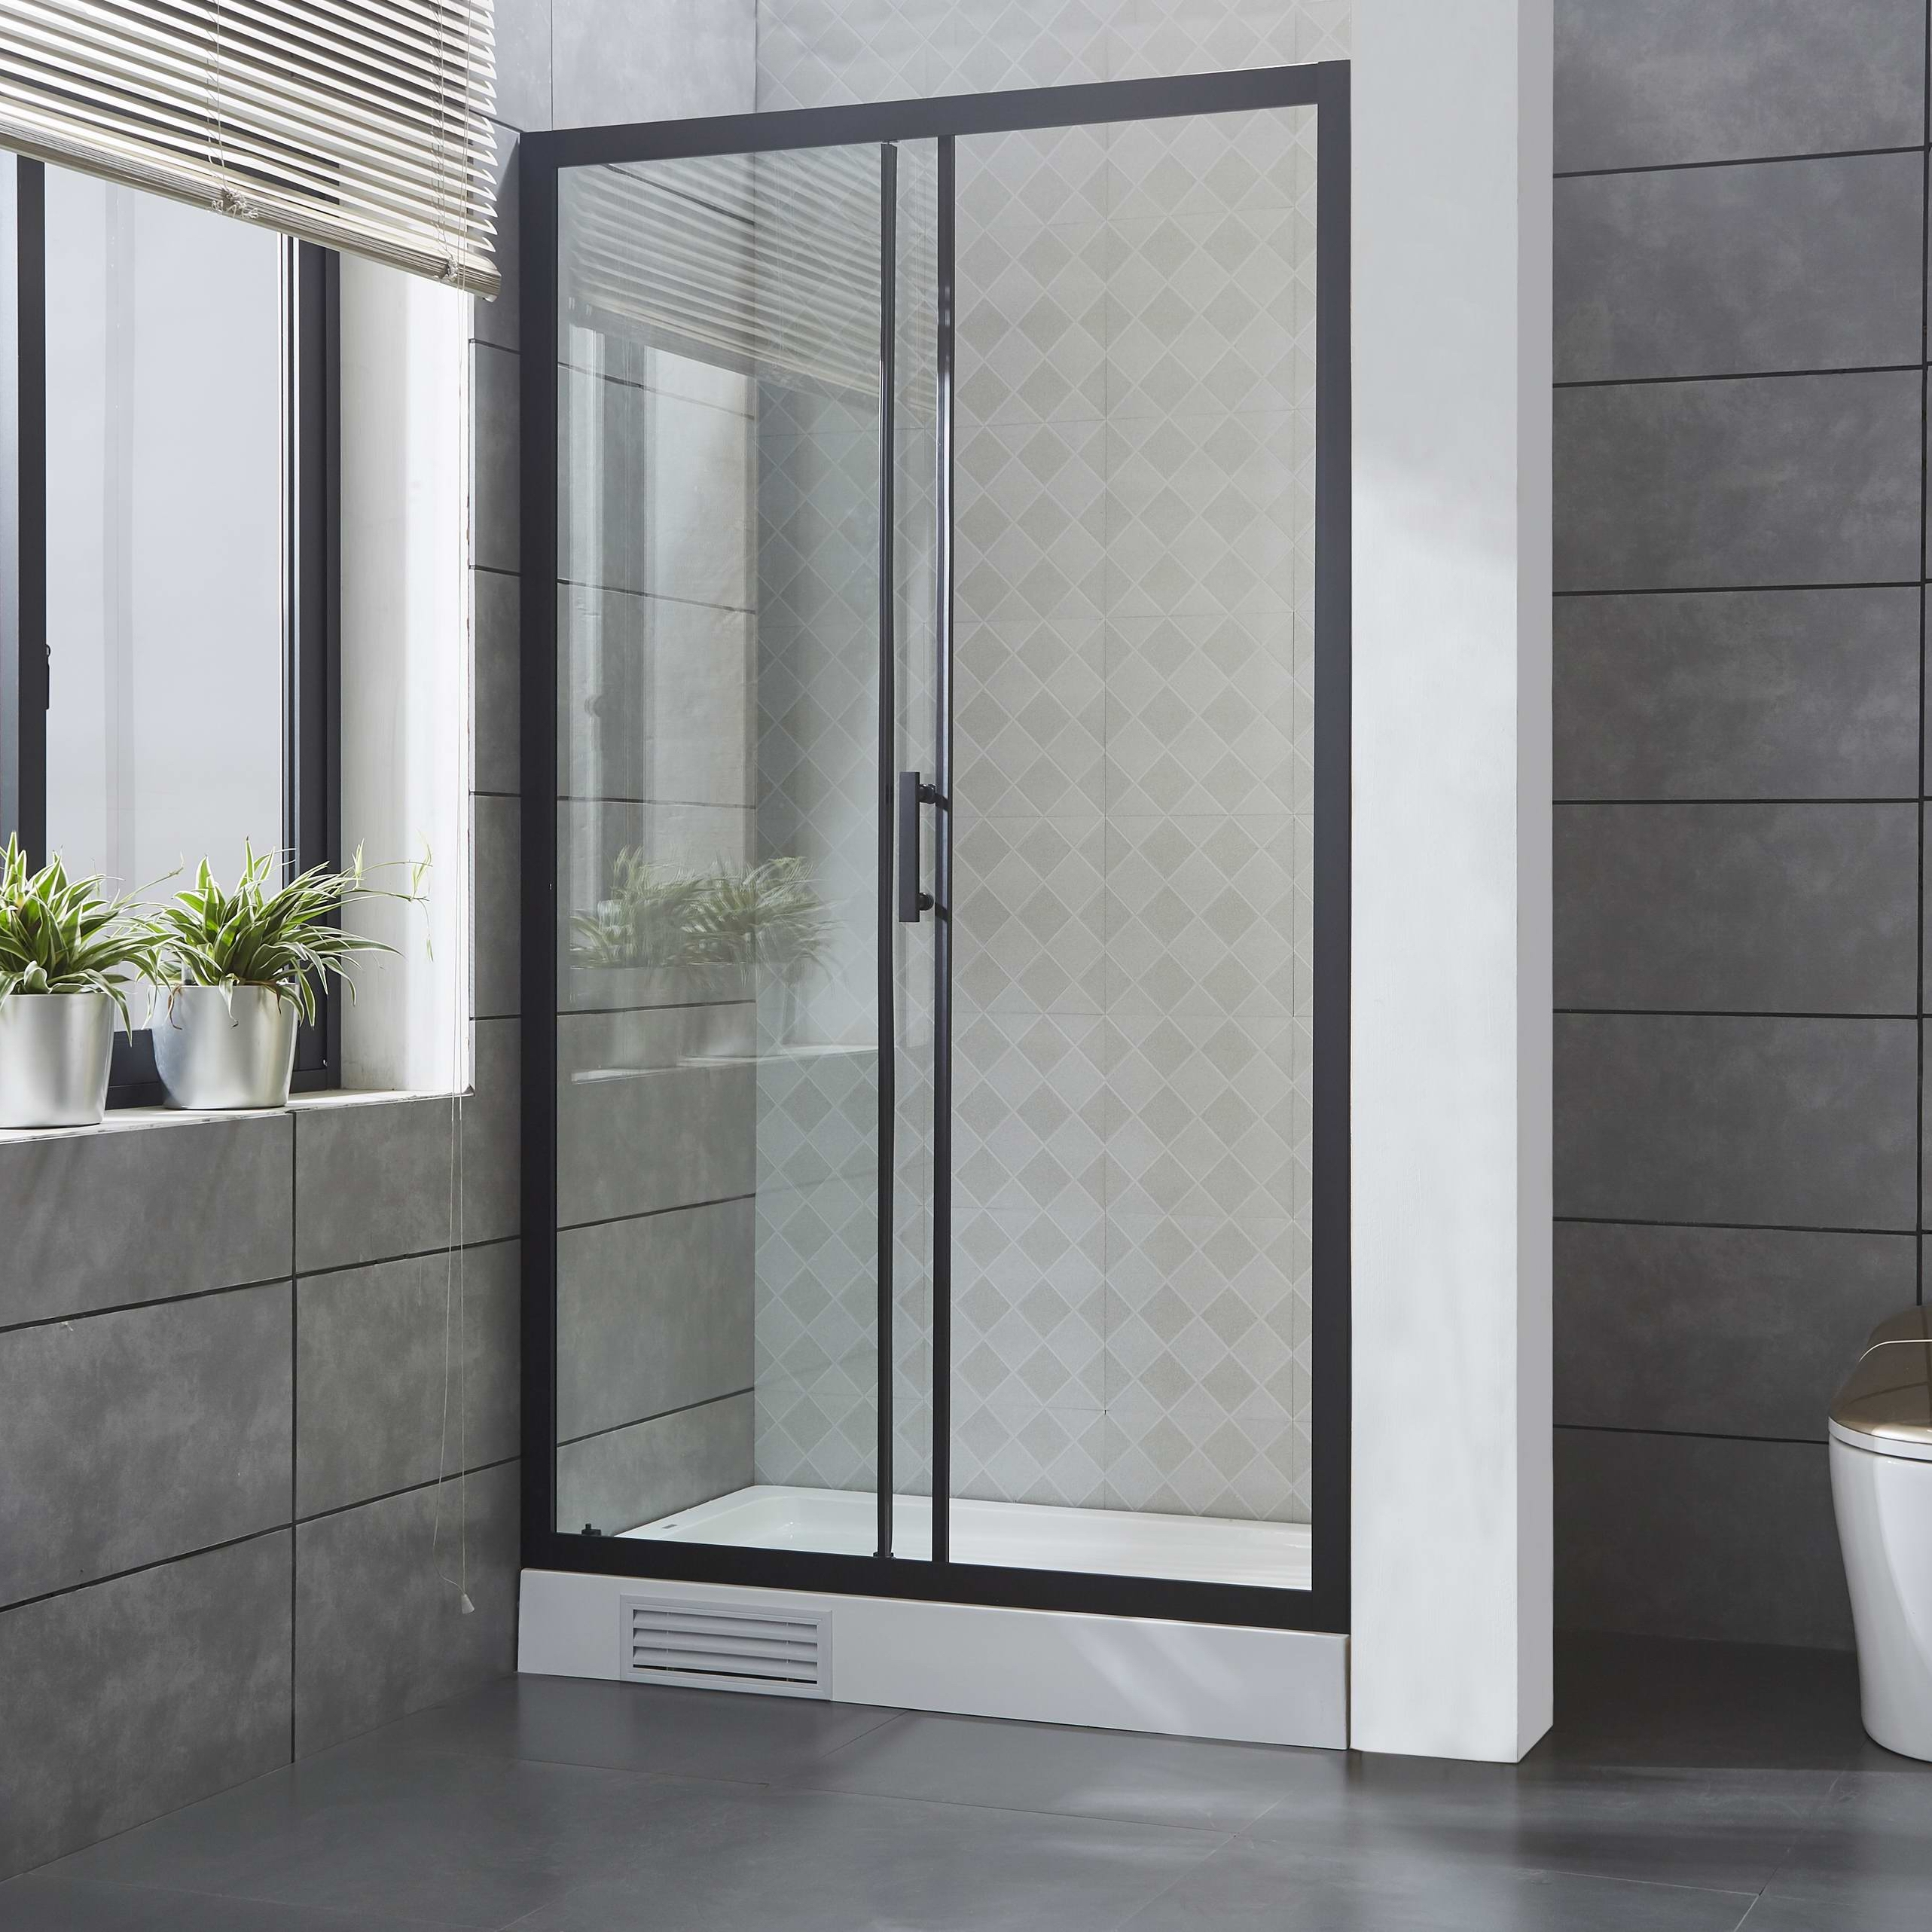 Matte Black 6MM Tempered Glass Shower Door Shower Enclosure with Nano Glass And Anti-exploding Protected Film